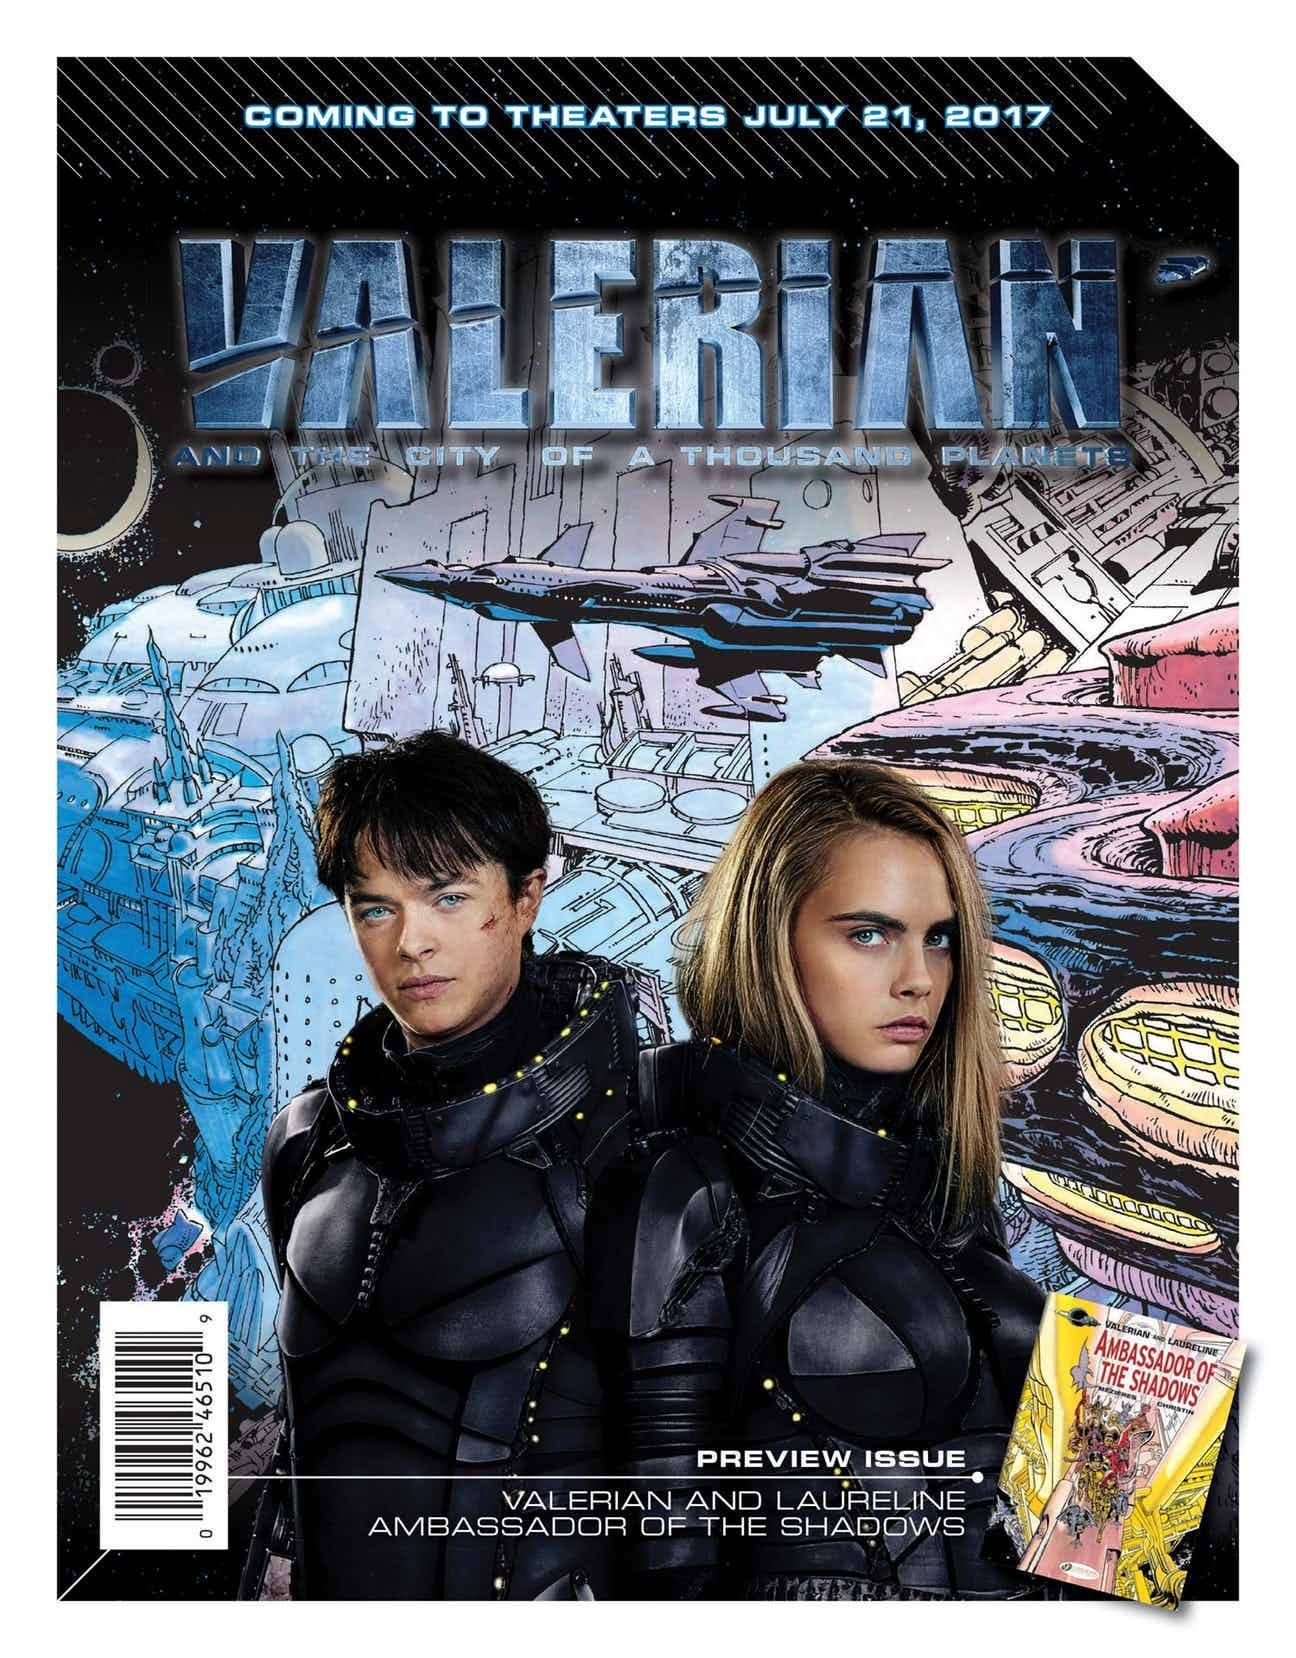 This Saturday, celebrate #FreeComicBookDay with a copy of 'Valerian and Laureline: Ambassador of the Shadows', the volume that inspired Luc Besson's upcoming film Valerian - CA and the City of a Thousand Planets. Visit http://bit.ly/FCBD_Locator for details.